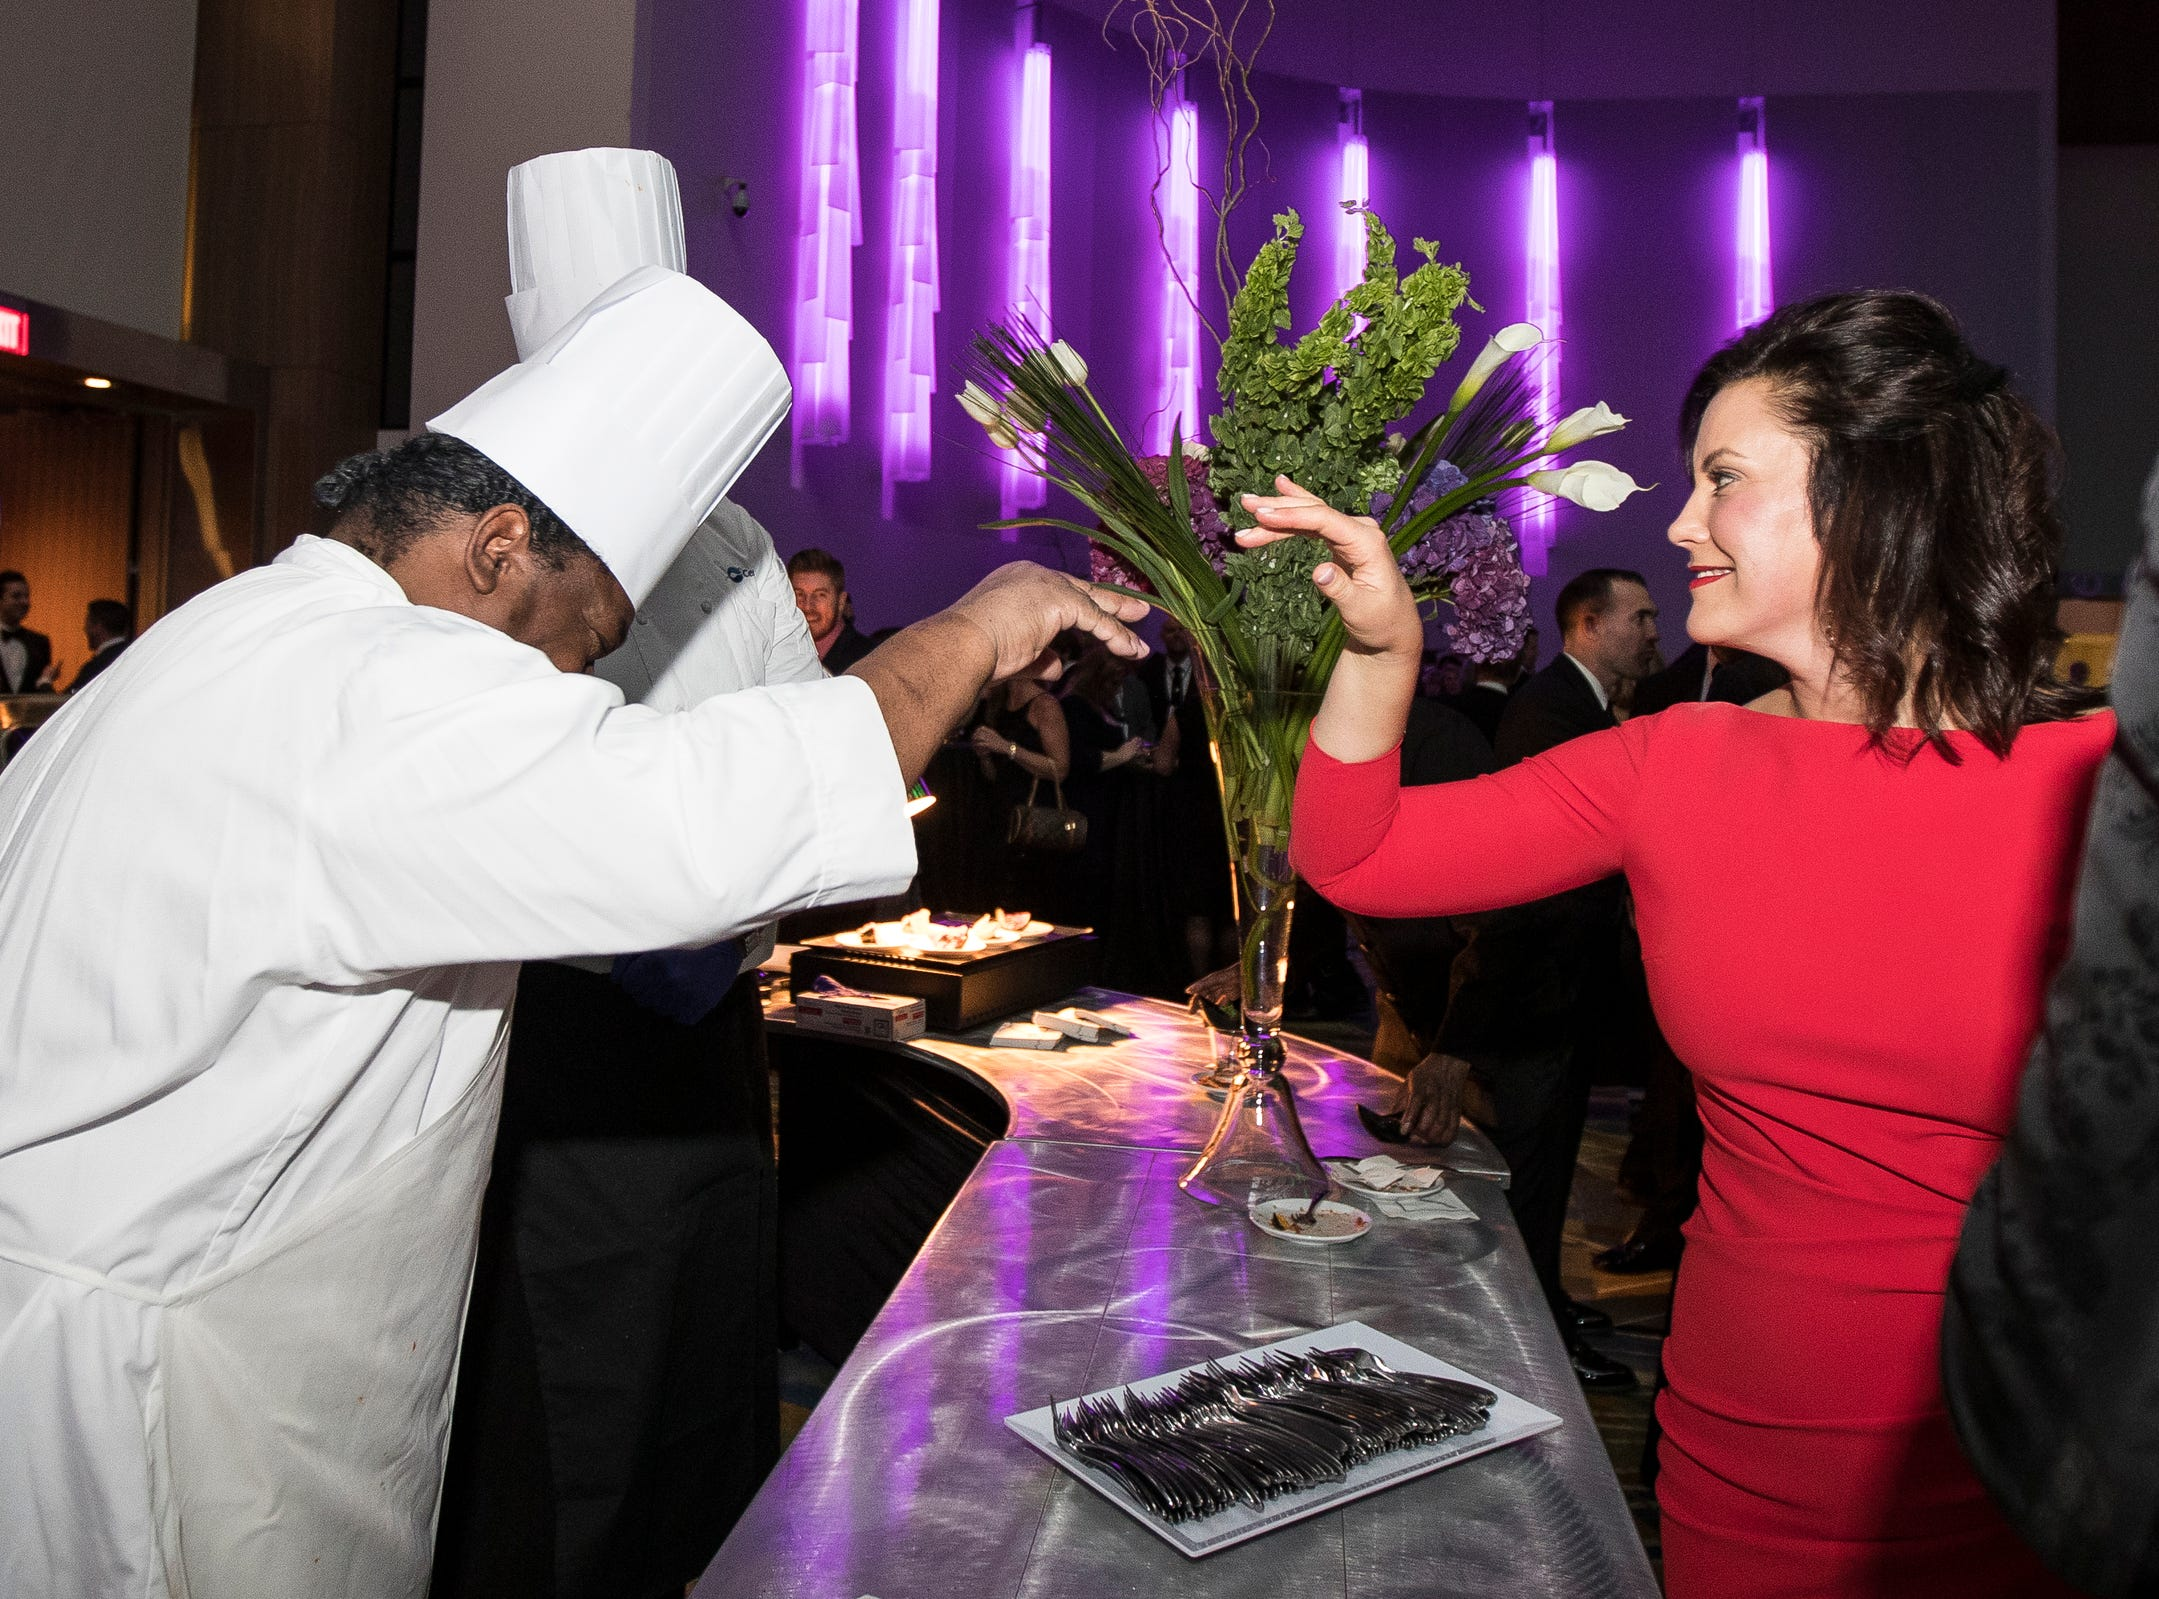 Governor Gretchen Whitmer high fives chef Guy Richards and chef Ricardo Payne during the inaugural ball at Cobo Center in Detroit on Tuesday, Jan. 1, 2019.